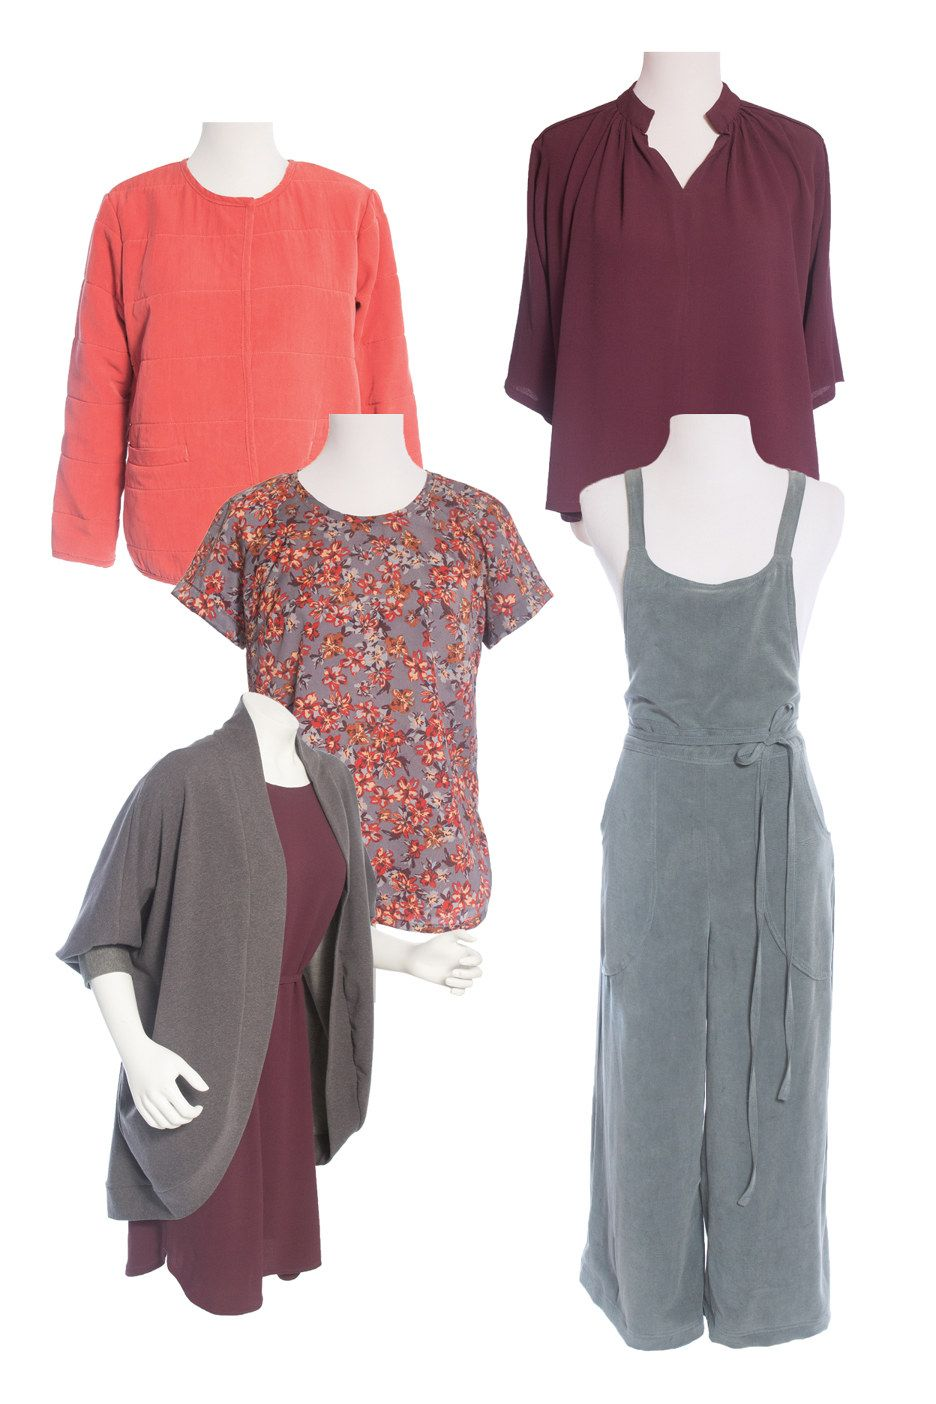 Fall/Winter Collection 2017 Sewing Pattern | Sewing patterns, Sewing ...